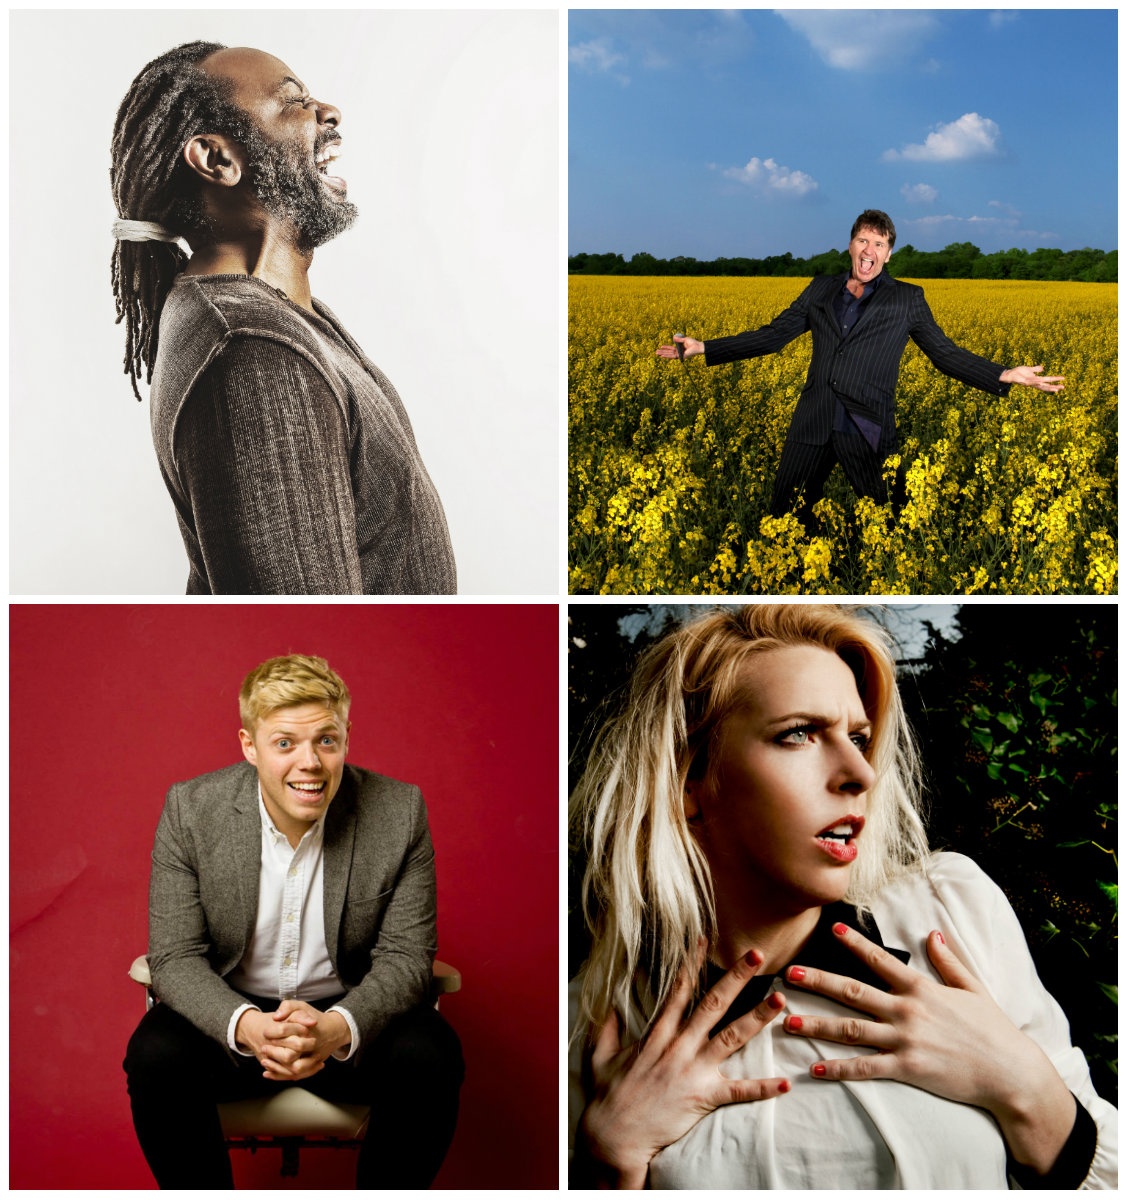 Top acts this year include Rob Beckett, Sara Pascoe, Reginald D Hunter and Stewart Francis